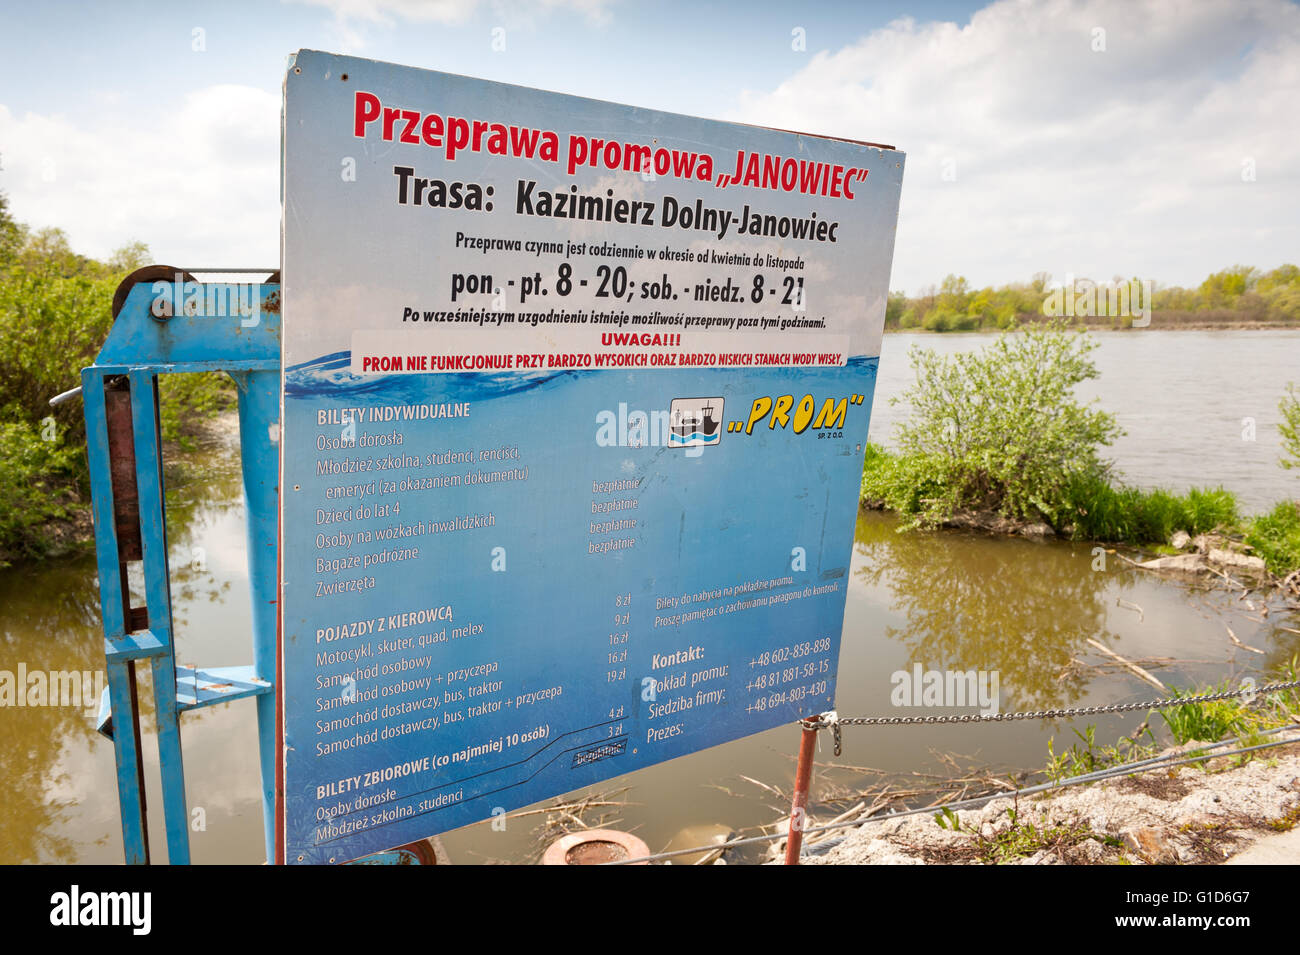 Ferry ship crossing information board with work schedule and prices, course from Kazimierz Dolny to Janowiec in - Stock Image